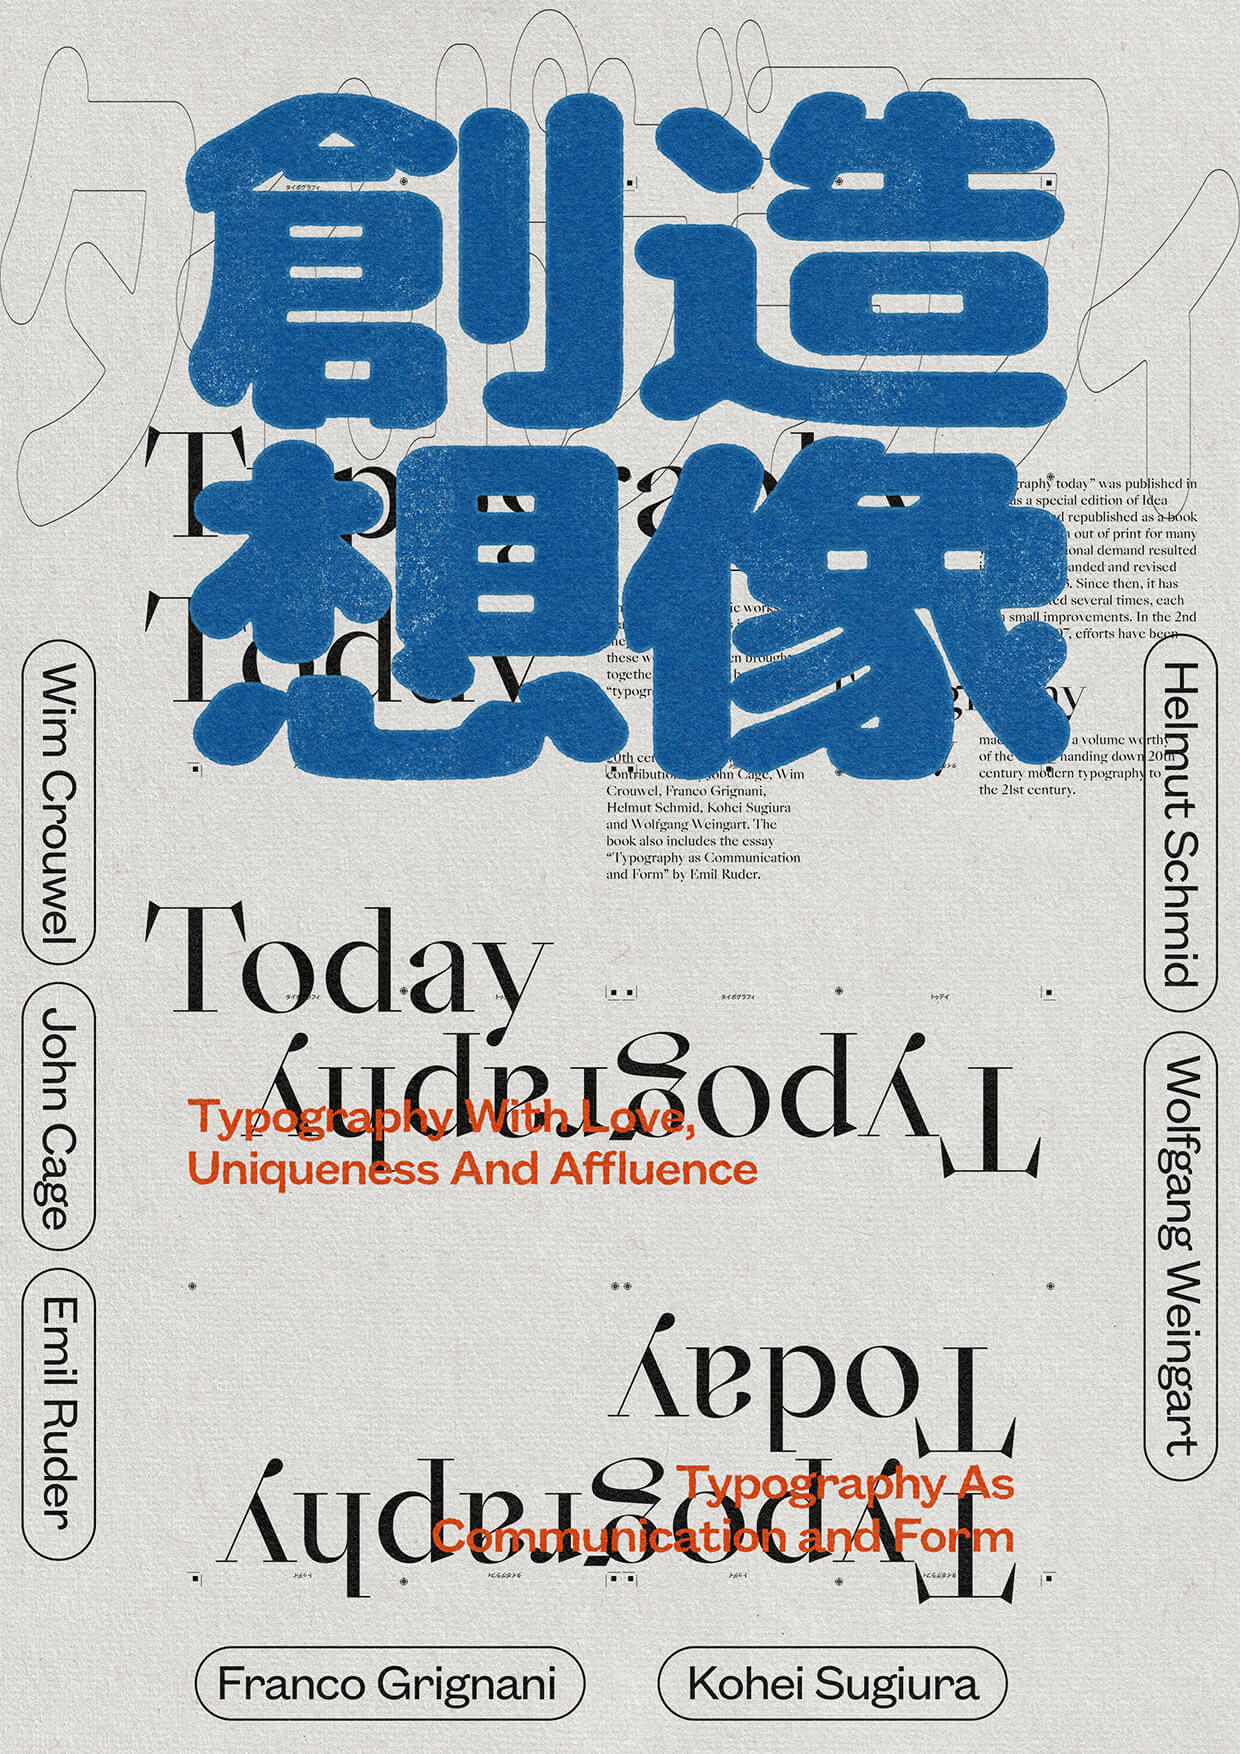 Poster Image of Typography Design